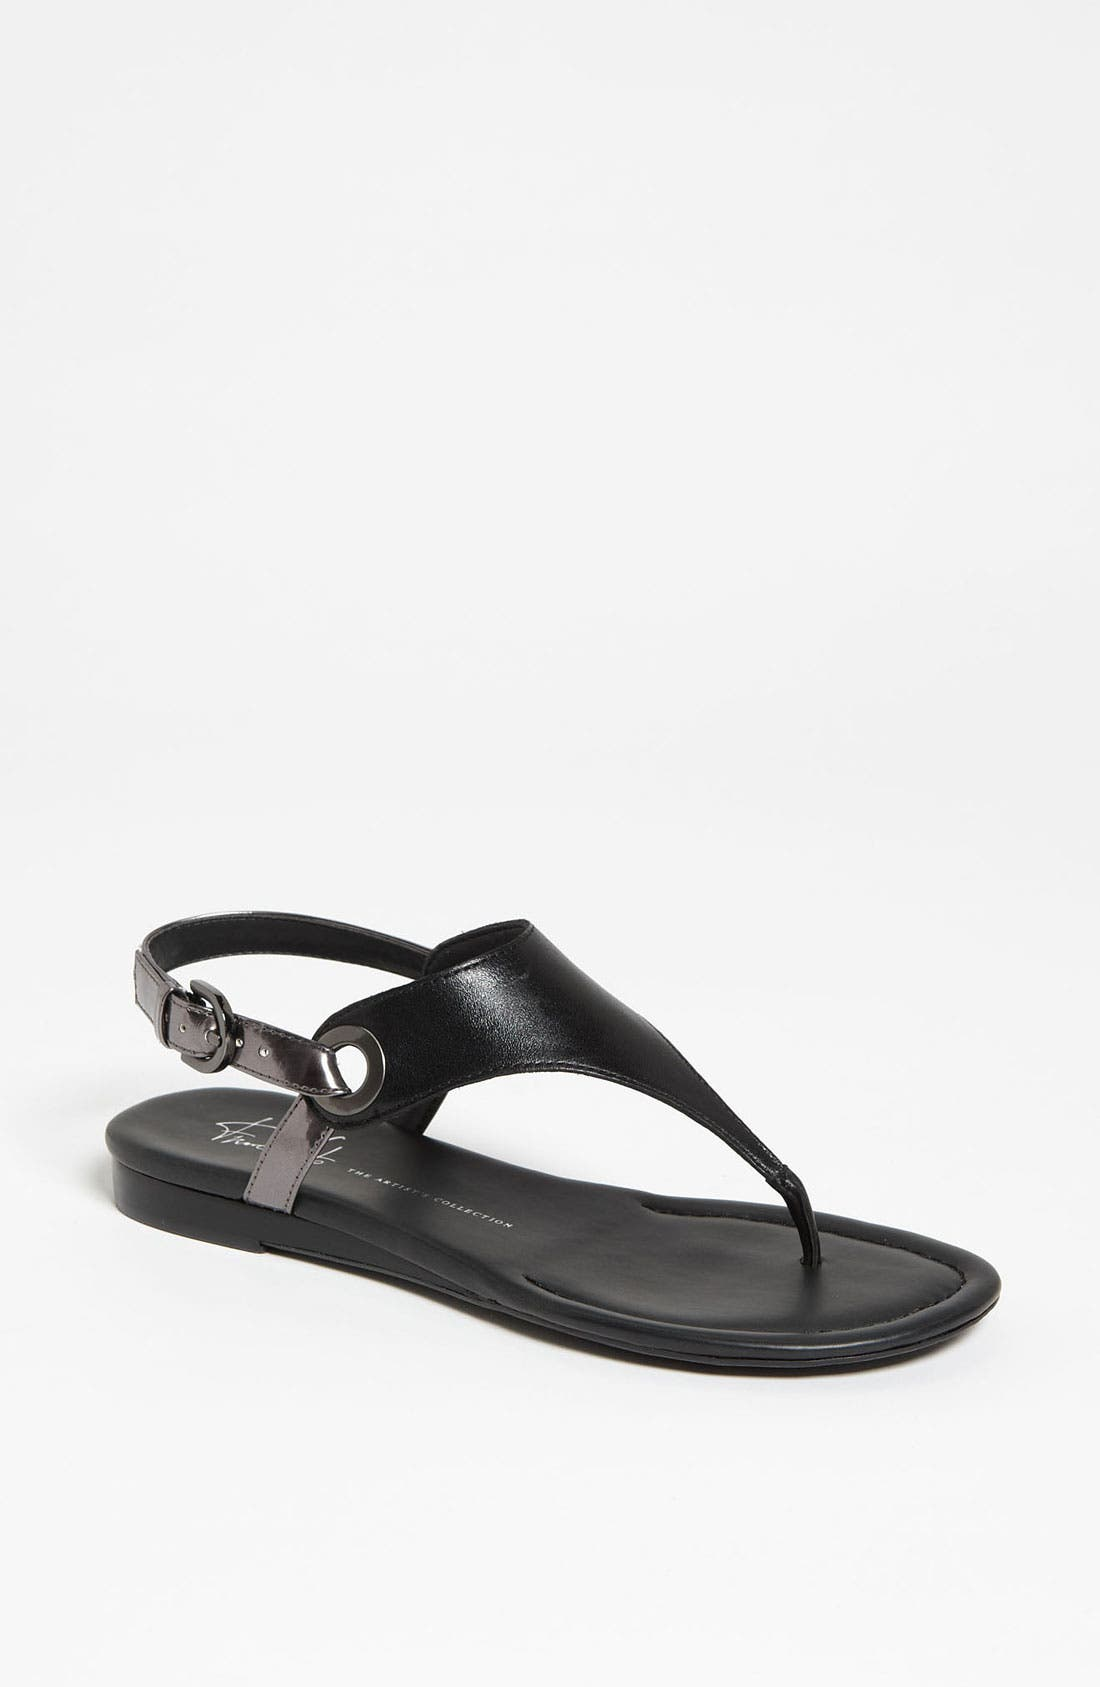 Alternate Image 1 Selected - Franco Sarto 'Grip' Sandal